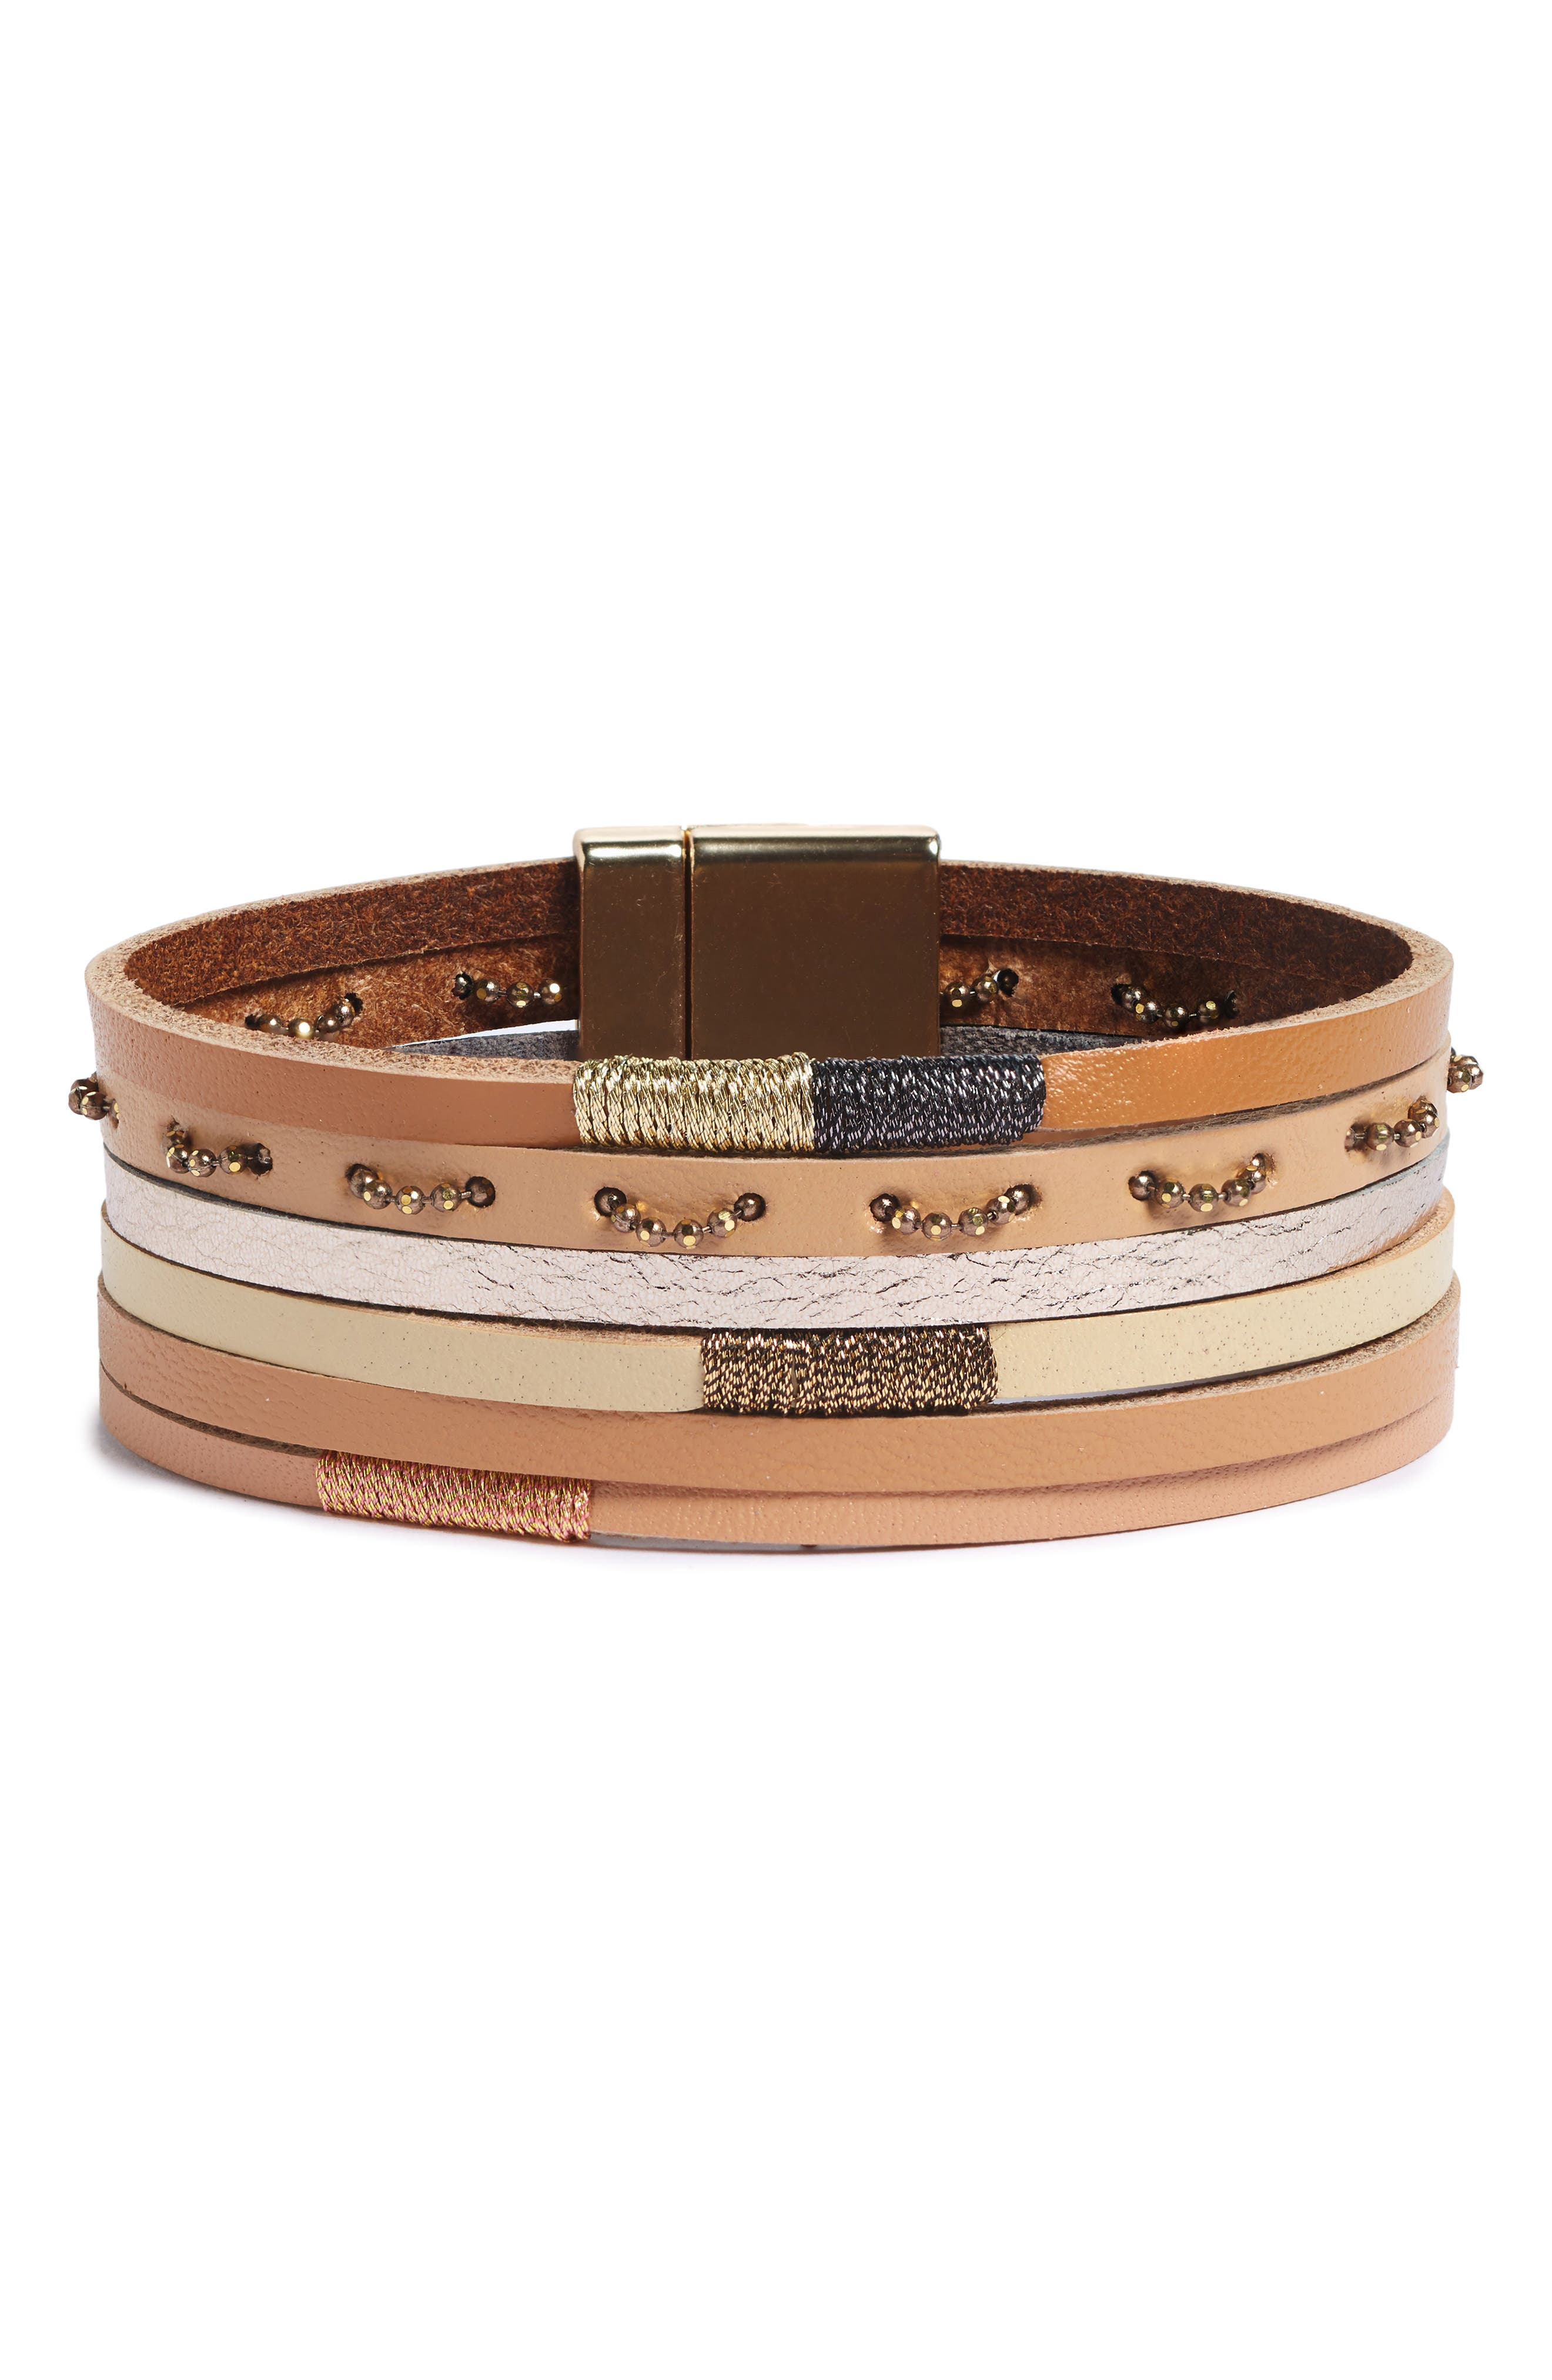 Multi Row Leather Bracelet,                         Main,                         color, Ivory